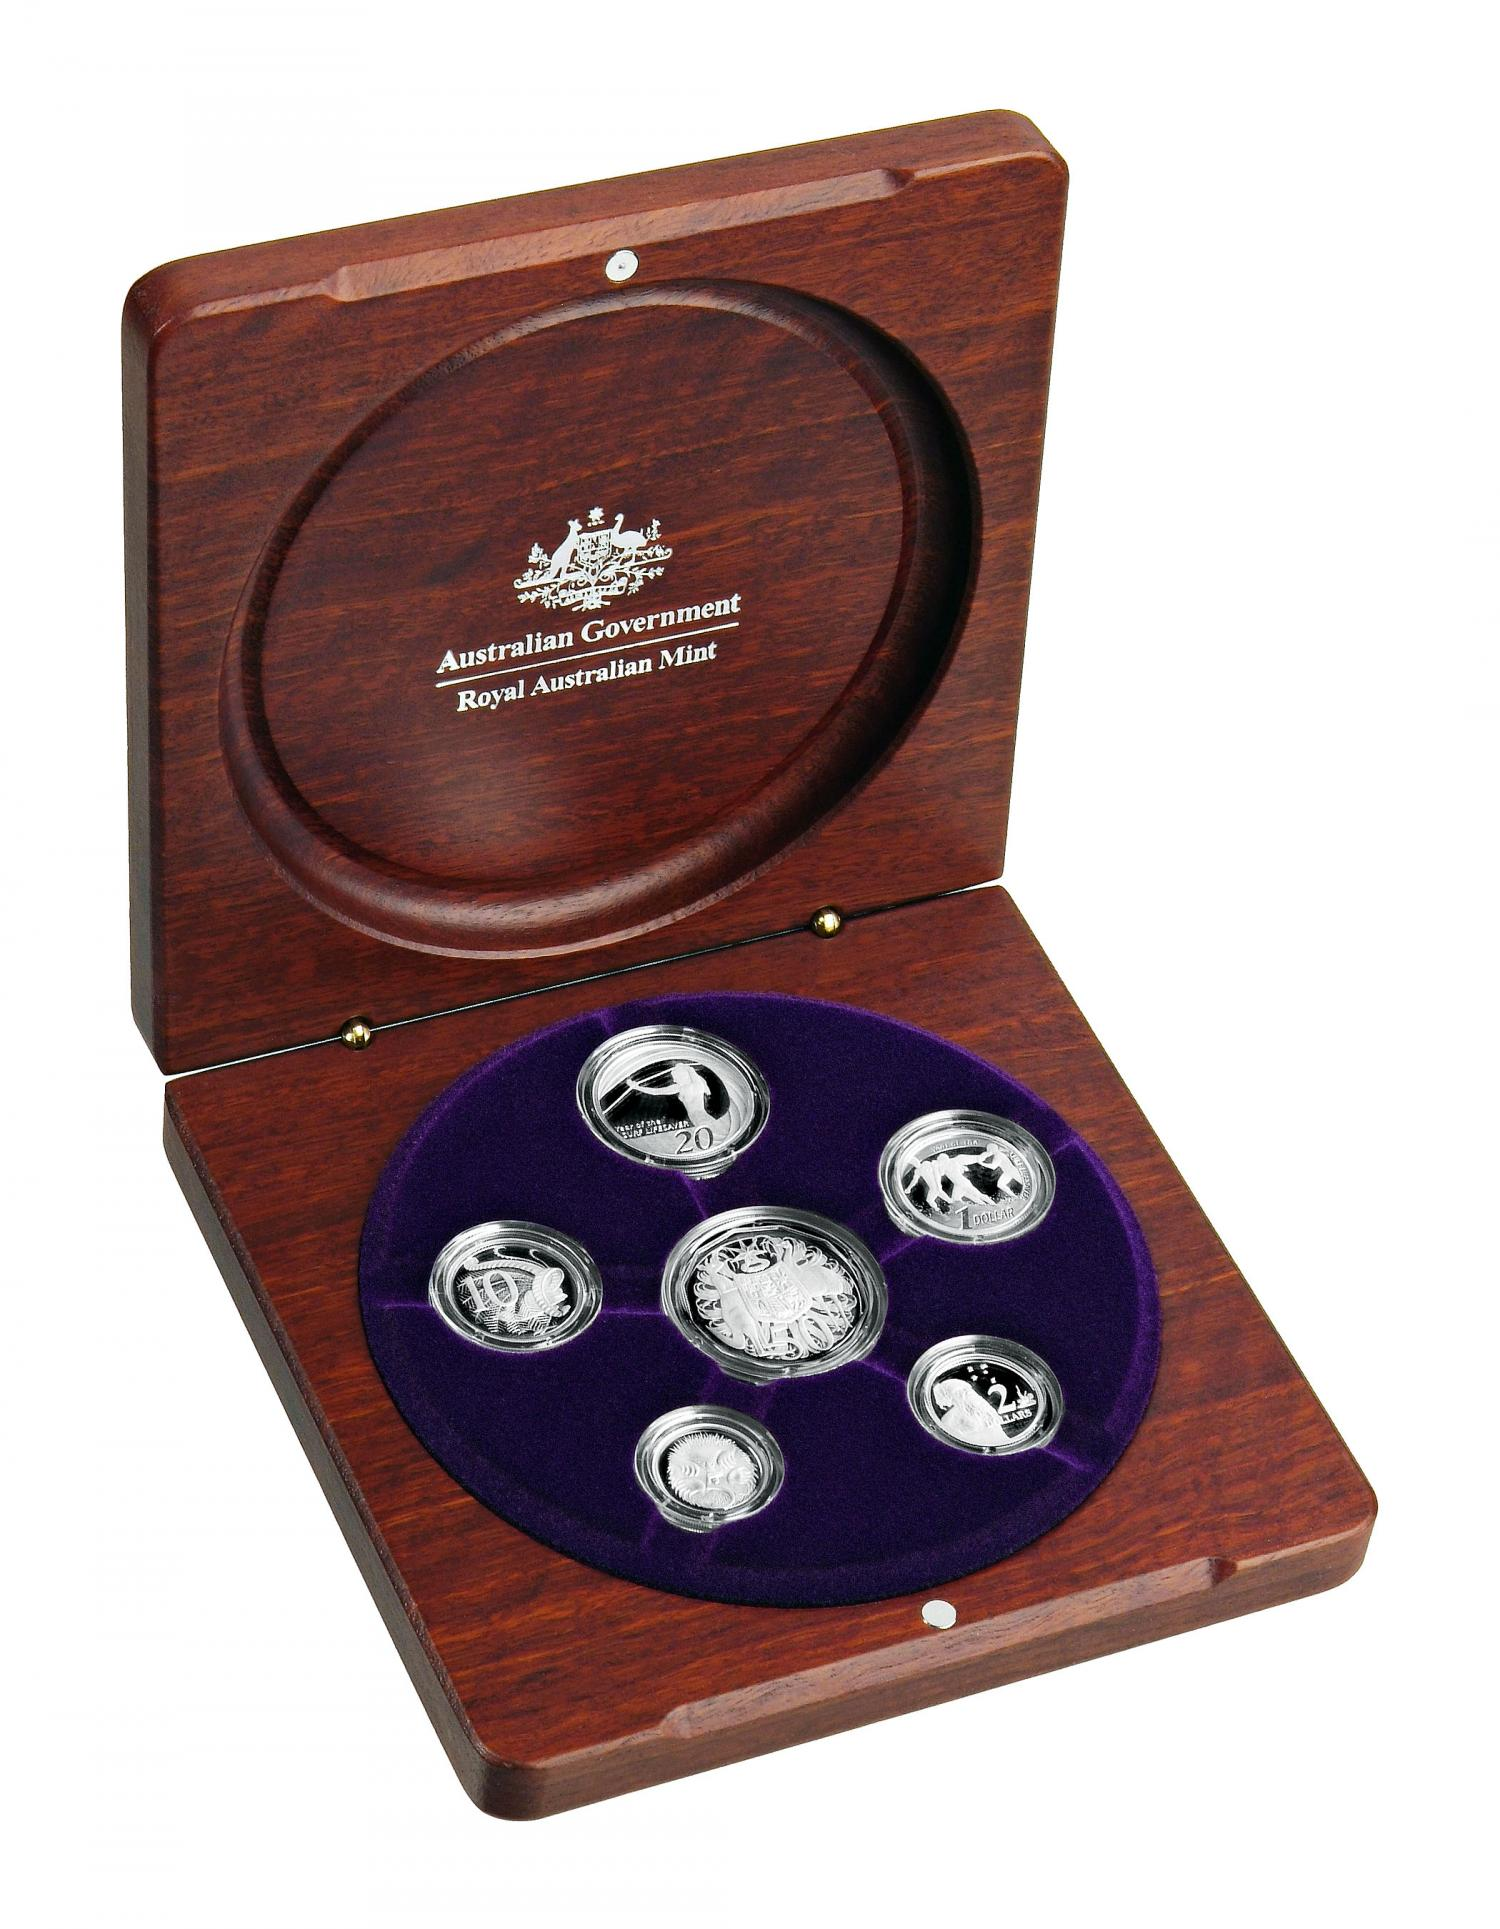 Thumbnail for 2007 Australian Fine Silver Proof Set